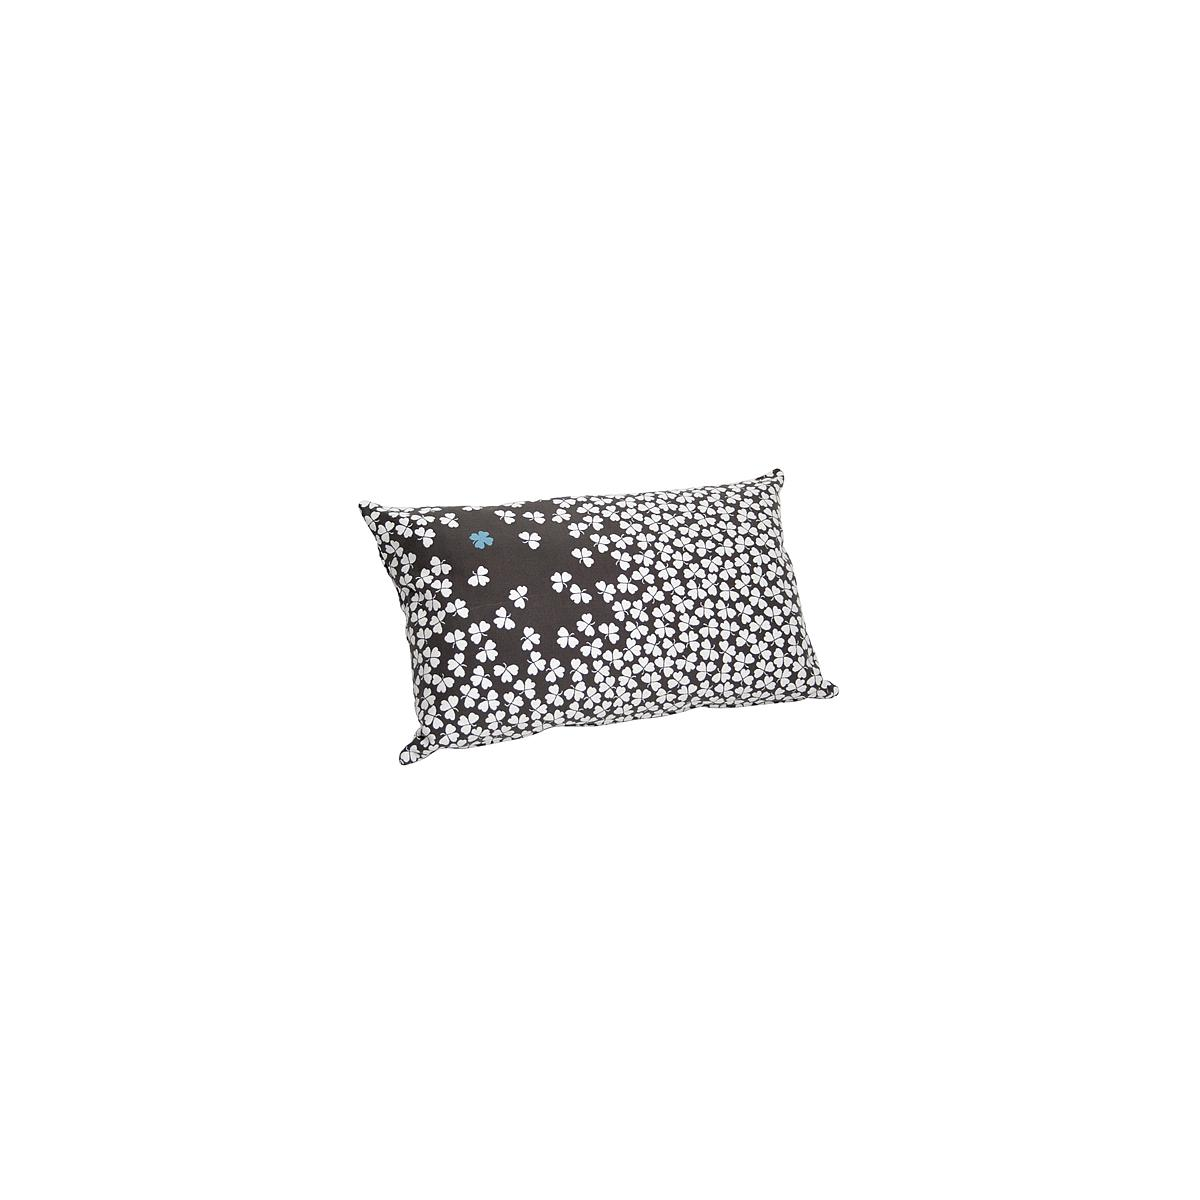 TREFLE by Fermob Coussin 68x44 cm Carbone